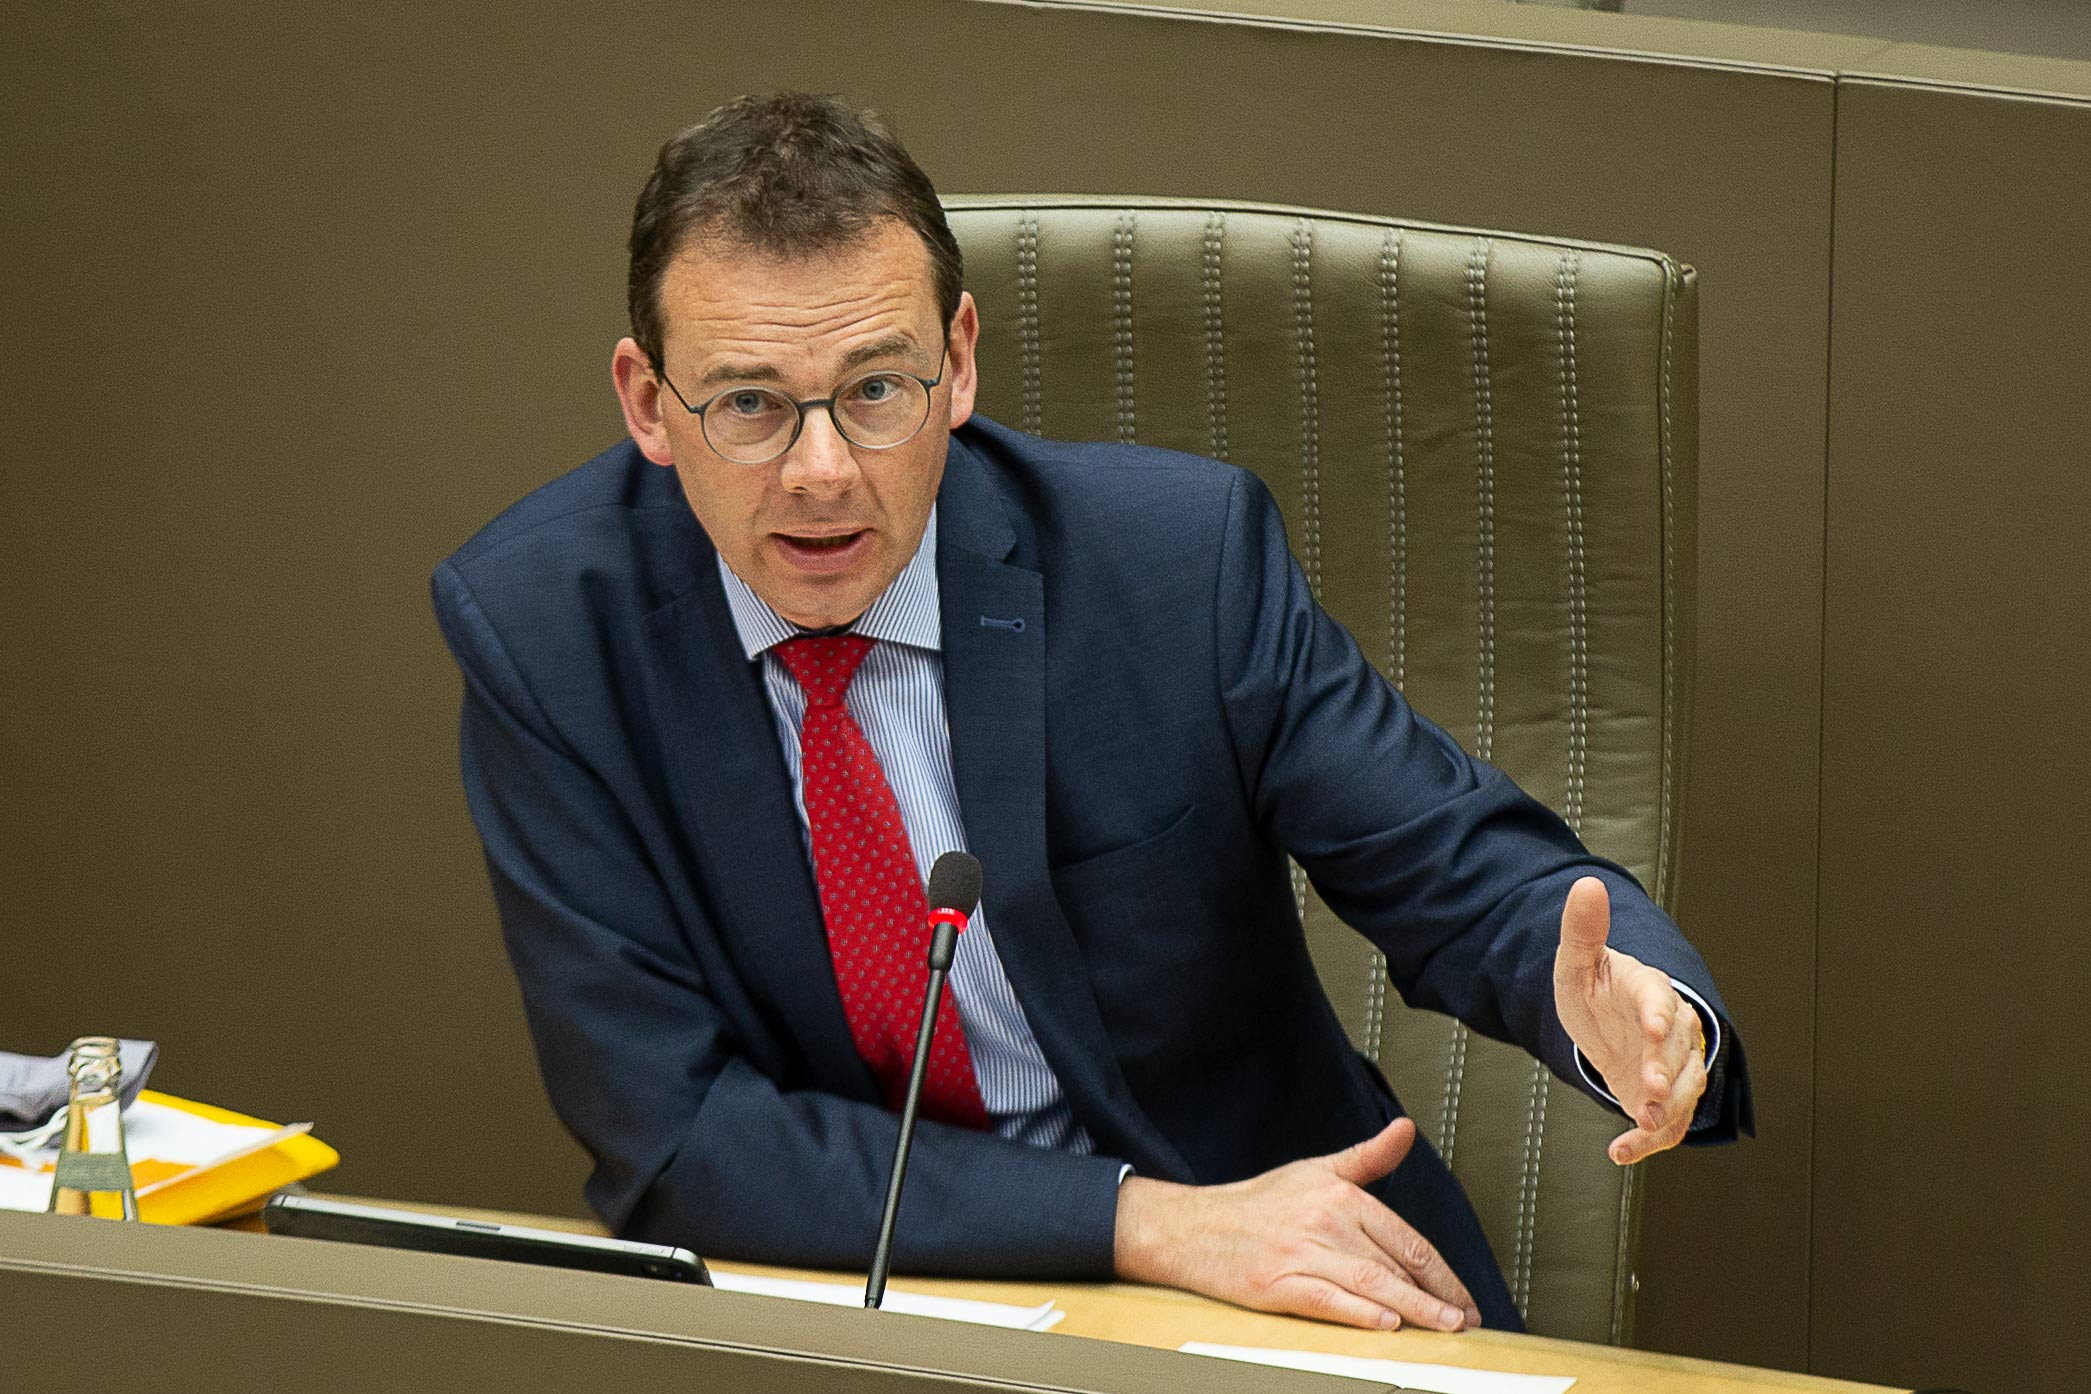 Belgian regional Health Minister Wouter Beke speaks during a meeting of the Flemish Parliament in Brussels on February 24.